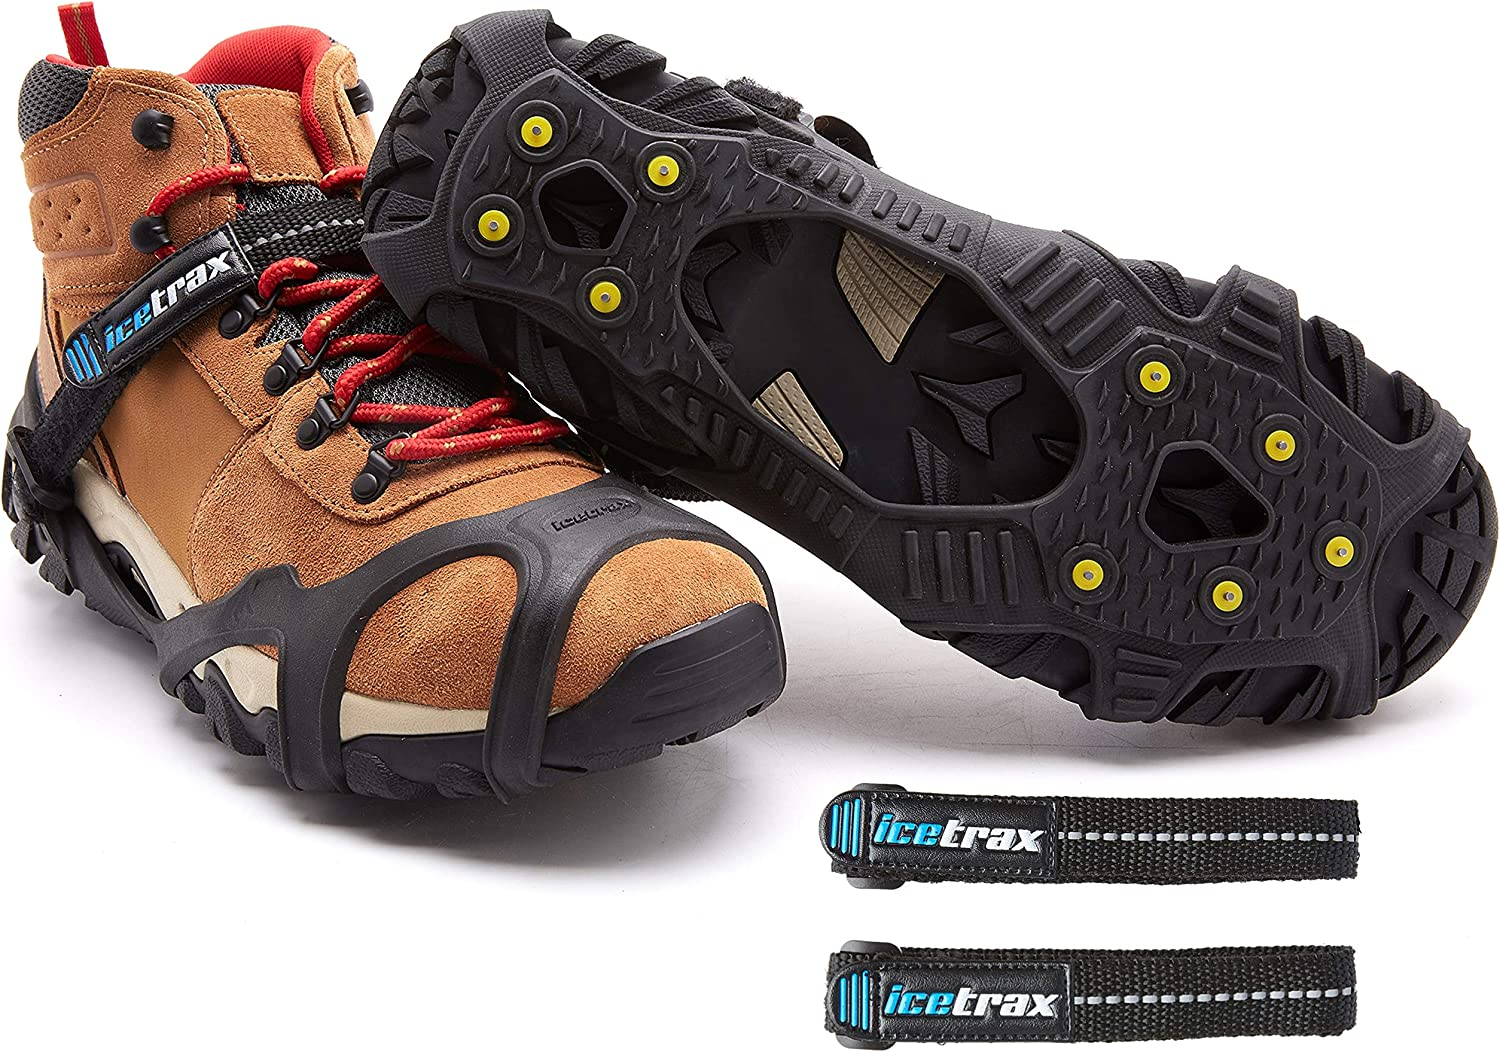 ICETRAX V3 Tungsten Ice Cleats with Velcro Straps, Winter Ice Grips for Shoes and Boots - Anti-Slip Grippers, StayON Toe, Reflective Heel